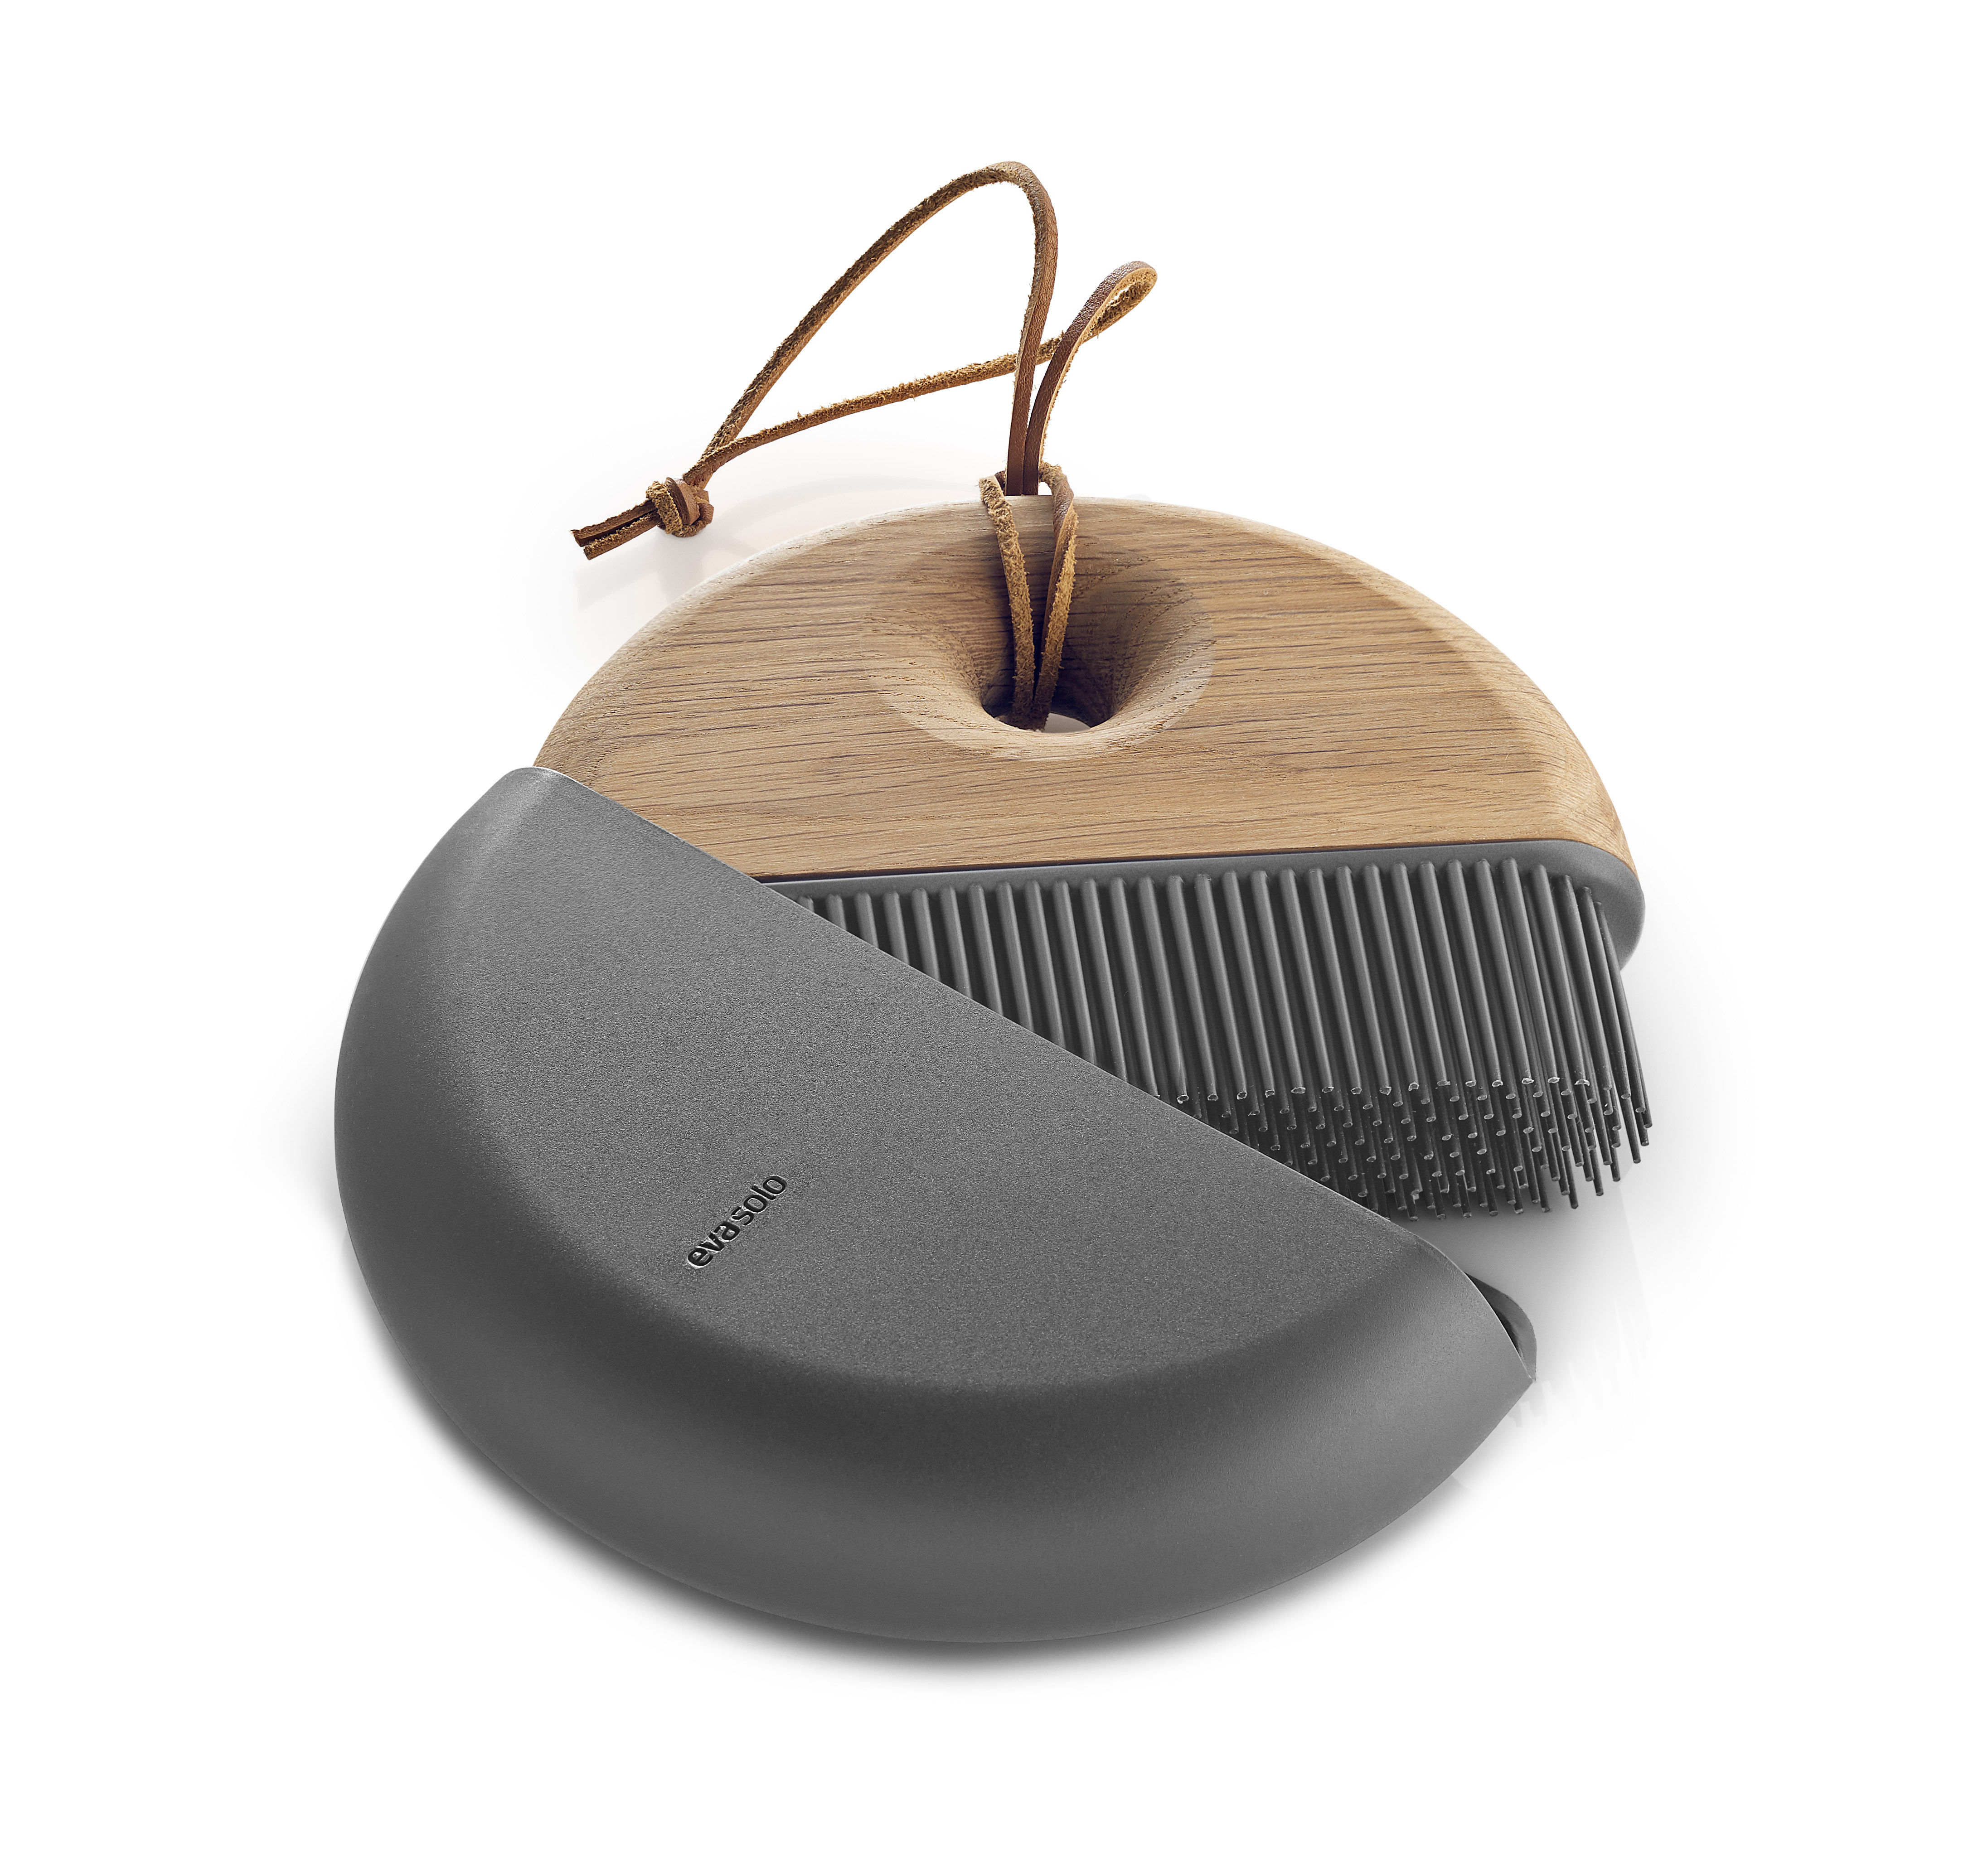 Kitchenware - Kitchen Sink Accessories - Sweep Sweeping kit by Eva Solo - Black & oak - Leather, Oak, Plastic, Silicone